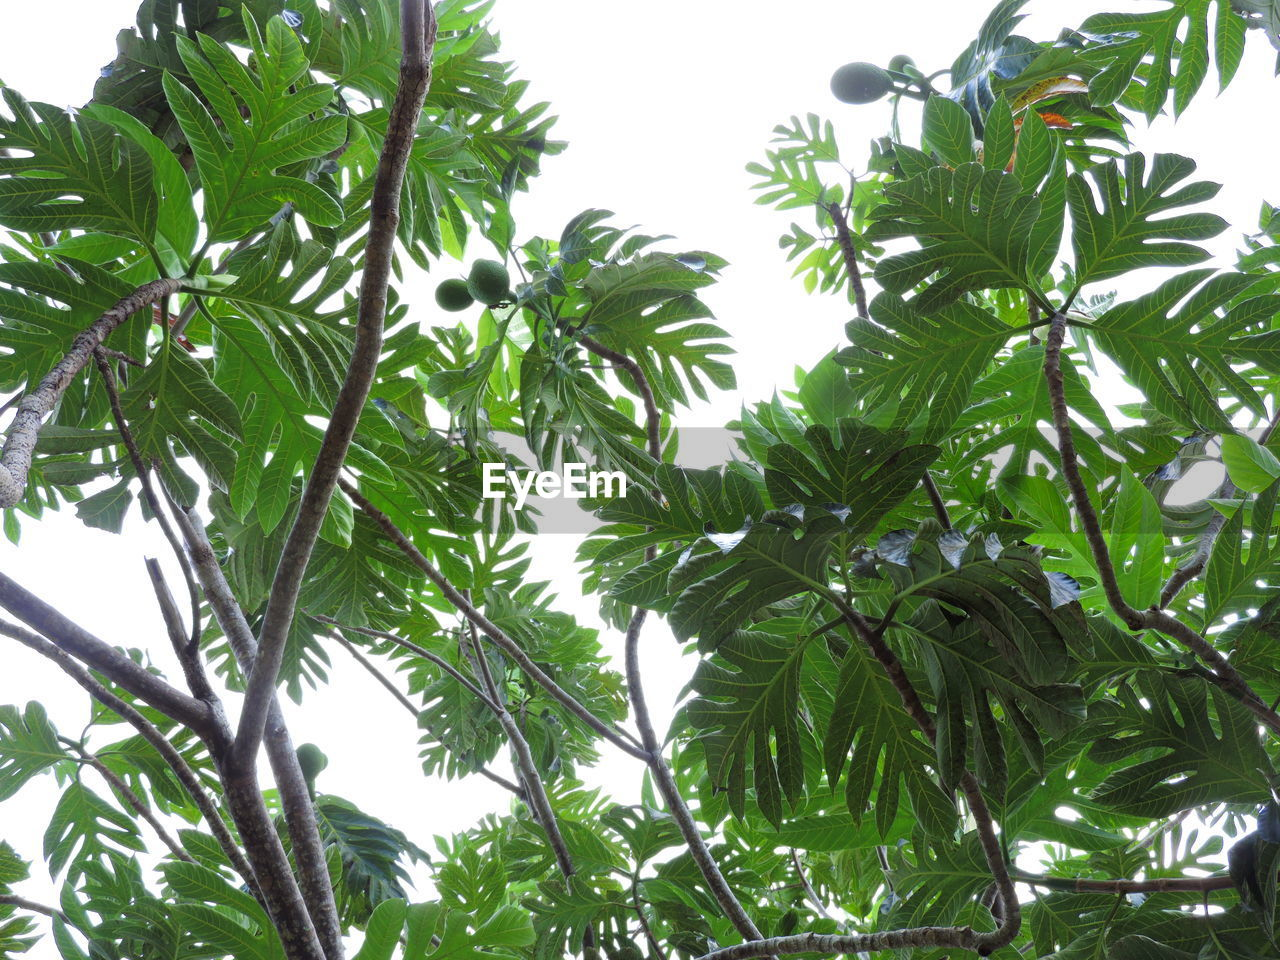 leaf, tree, low angle view, growth, green color, no people, nature, day, plant, branch, outdoors, sky, beauty in nature, clear sky, white background, close-up, freshness